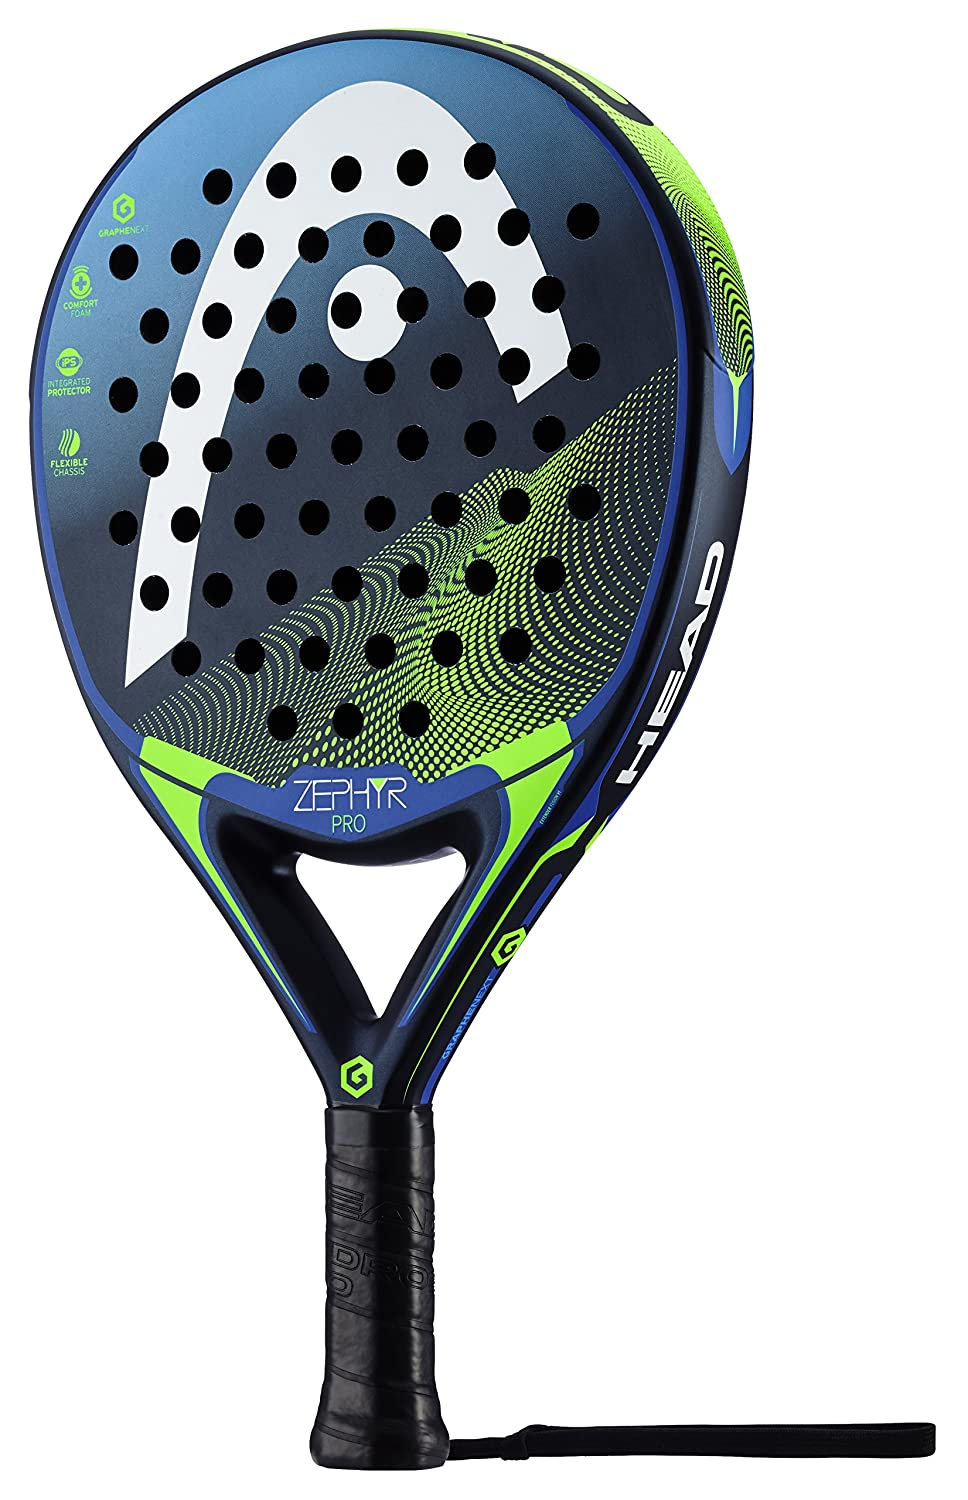 Head Graphene Touch Zephyr Pro Tenis, Unisex Adulto, Multicolor, One Size